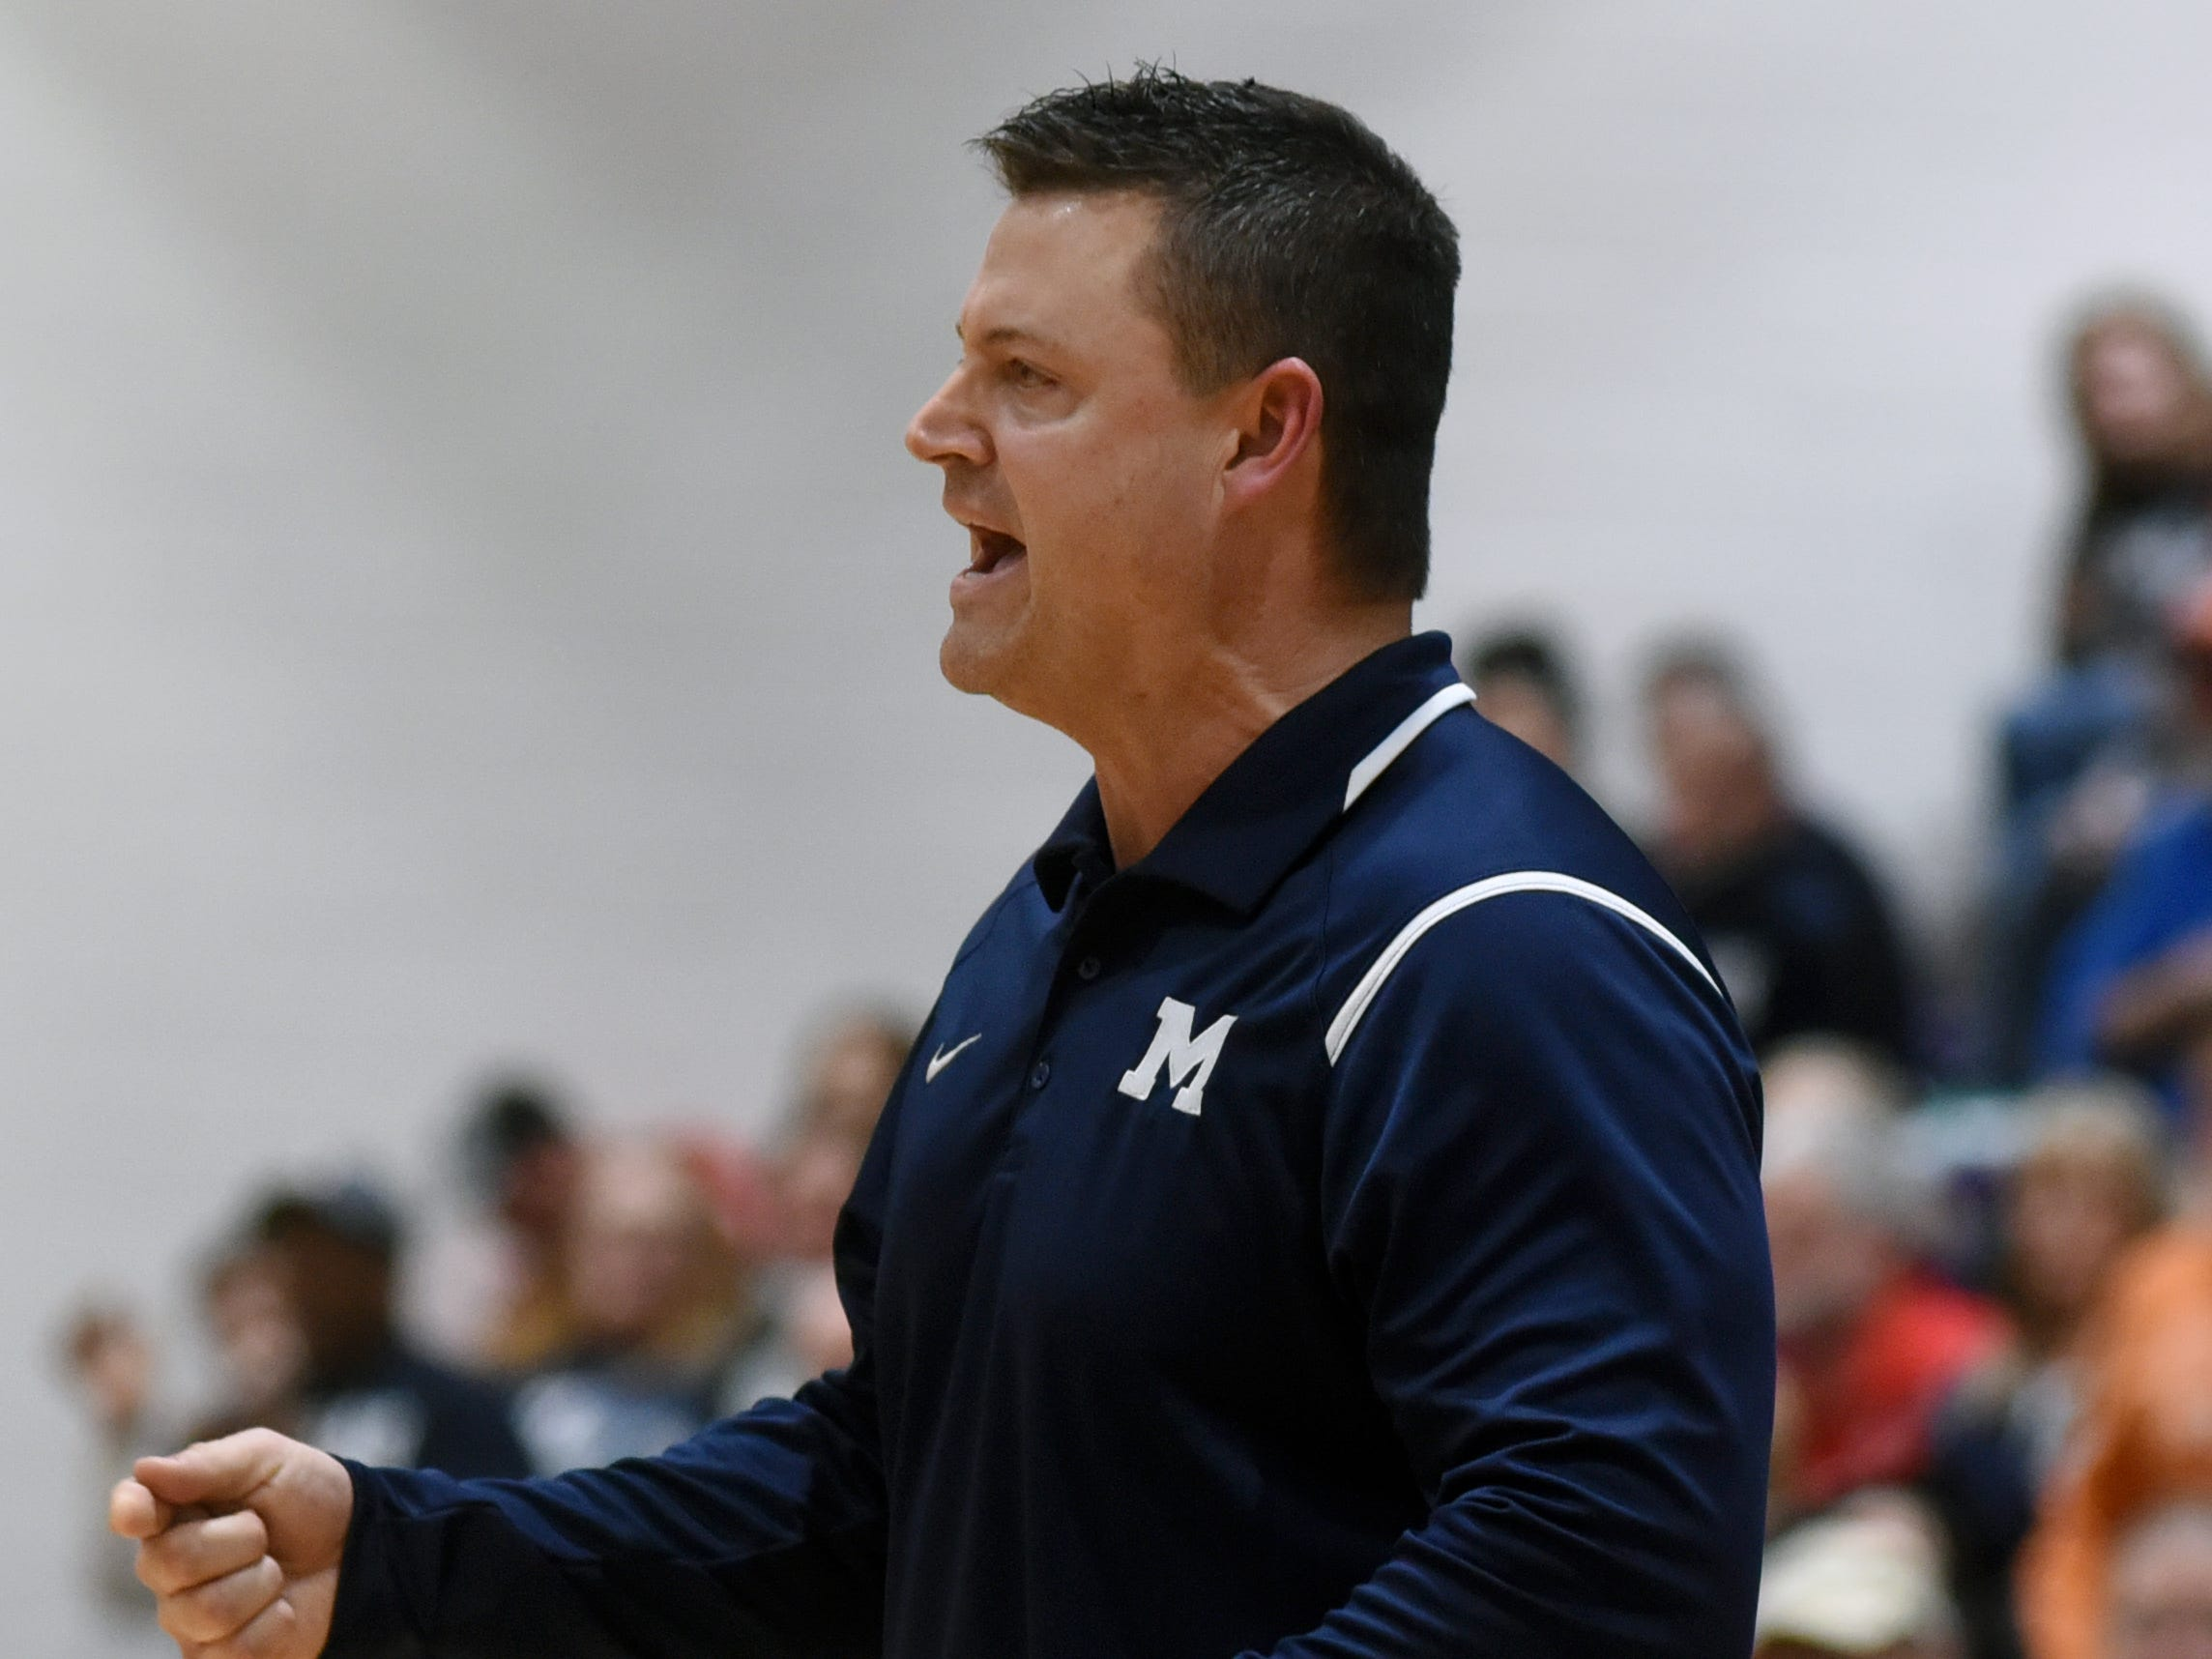 Morgan coach Matt Zumbro tries to get his team's attention during a 56-55 loss to Wheelersburg in a Division III regional semifinal at Logan.